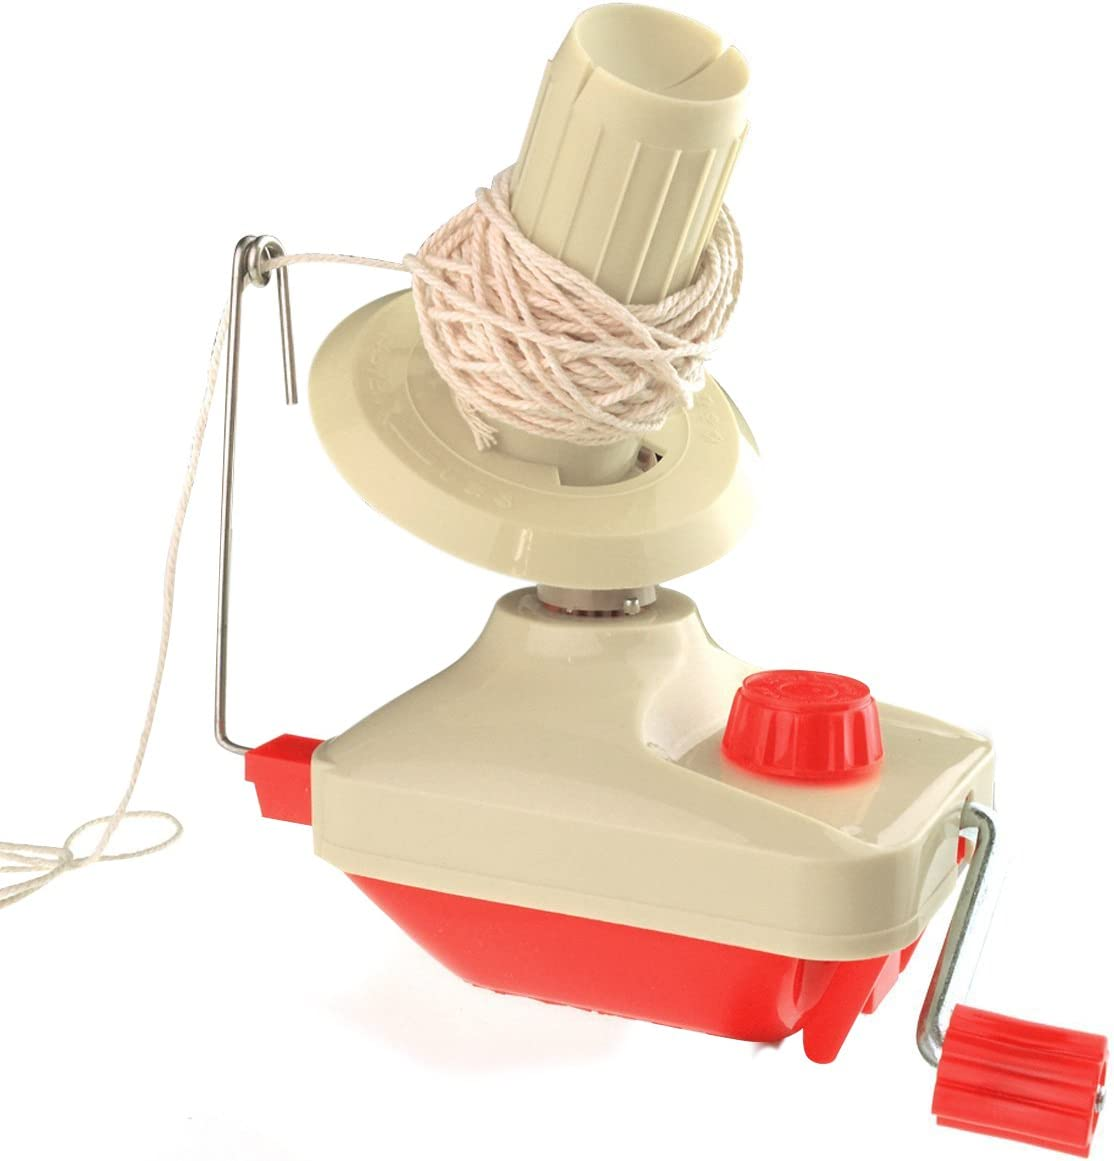 Marrywindix Bobbin Brand Cheap Sale Venue Winder Complete Free Shipping Yarn Clasp Hand Table Operated